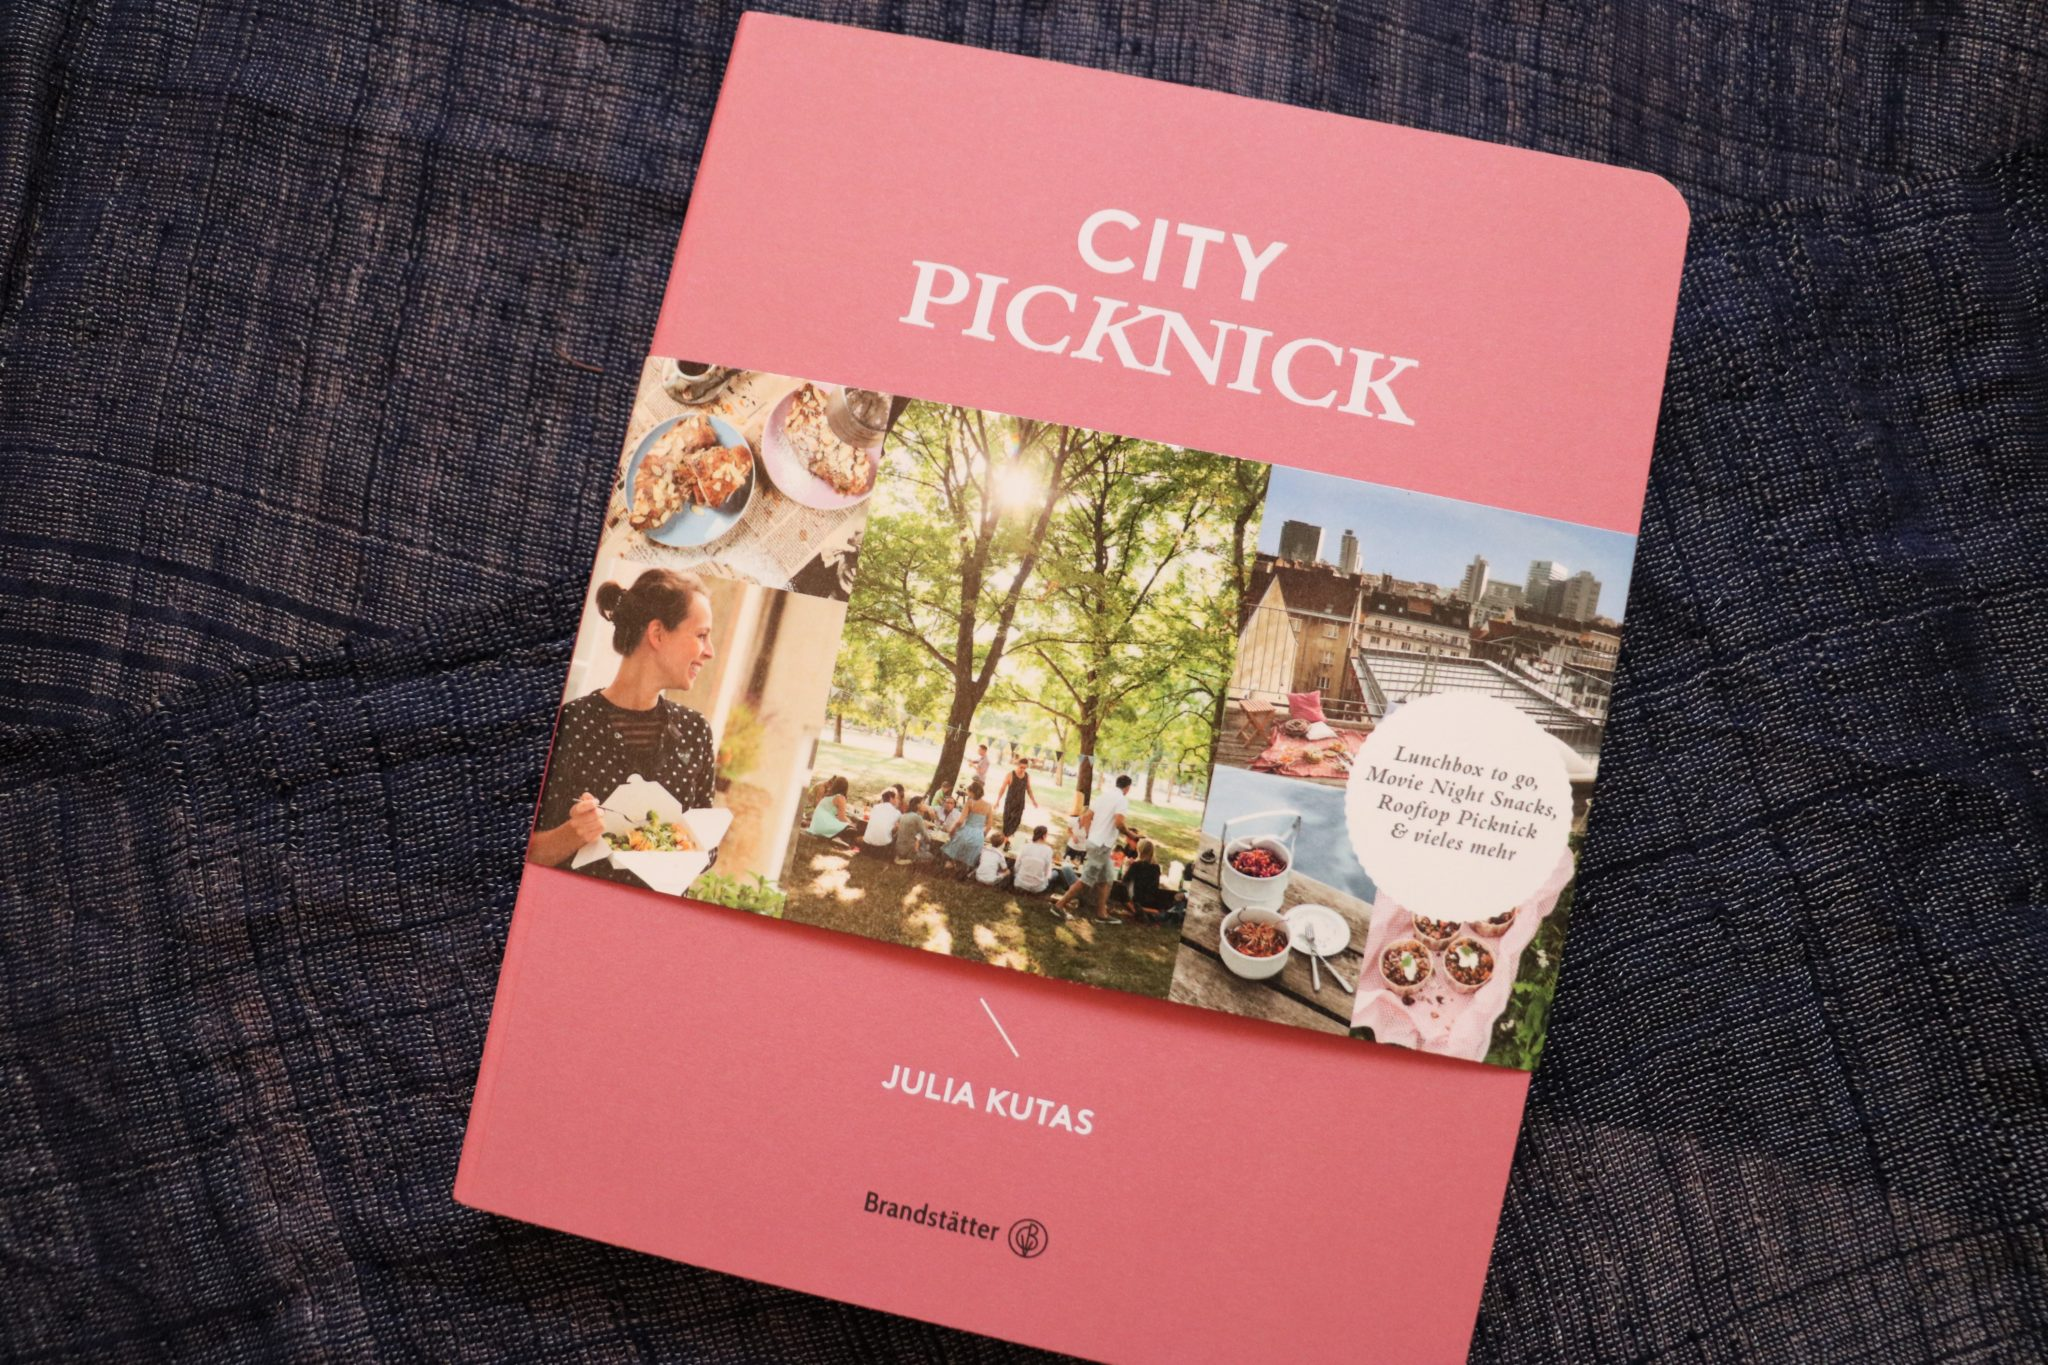 City Picknick_Julia Kutas